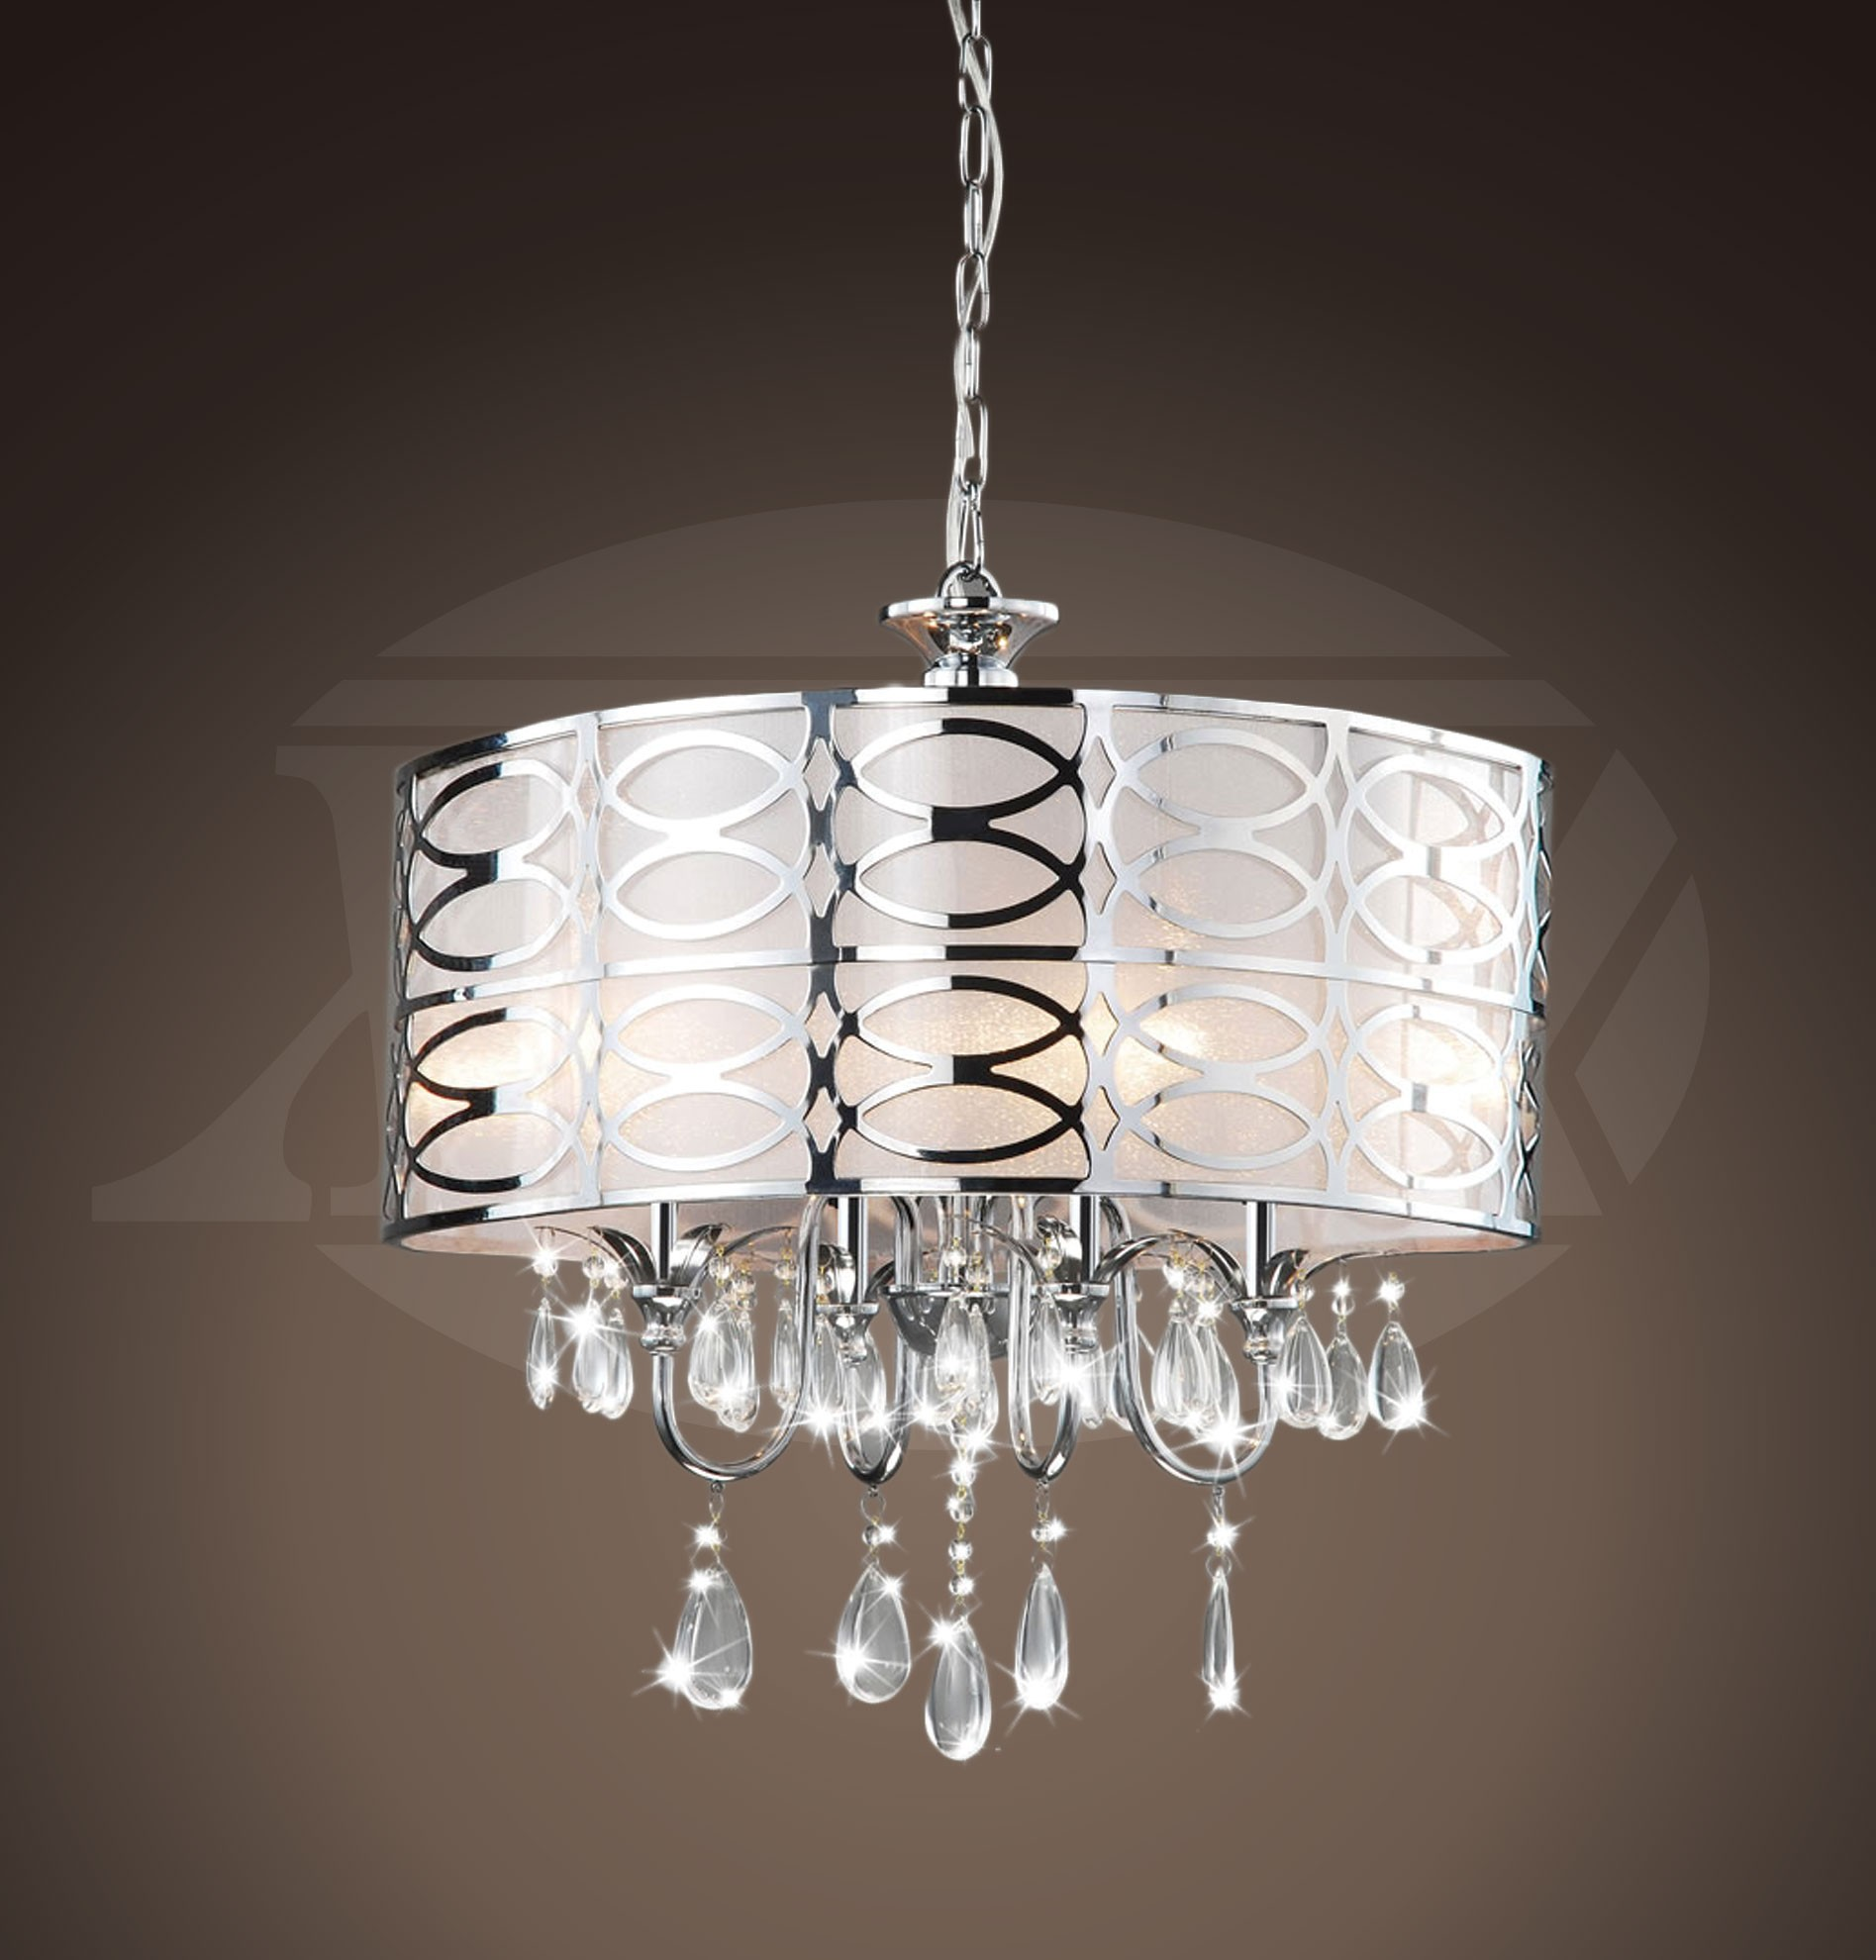 Vivienne Stylish 4 Light Chrome Frosted Glass Crystal Chandelier 18 5 H X 17